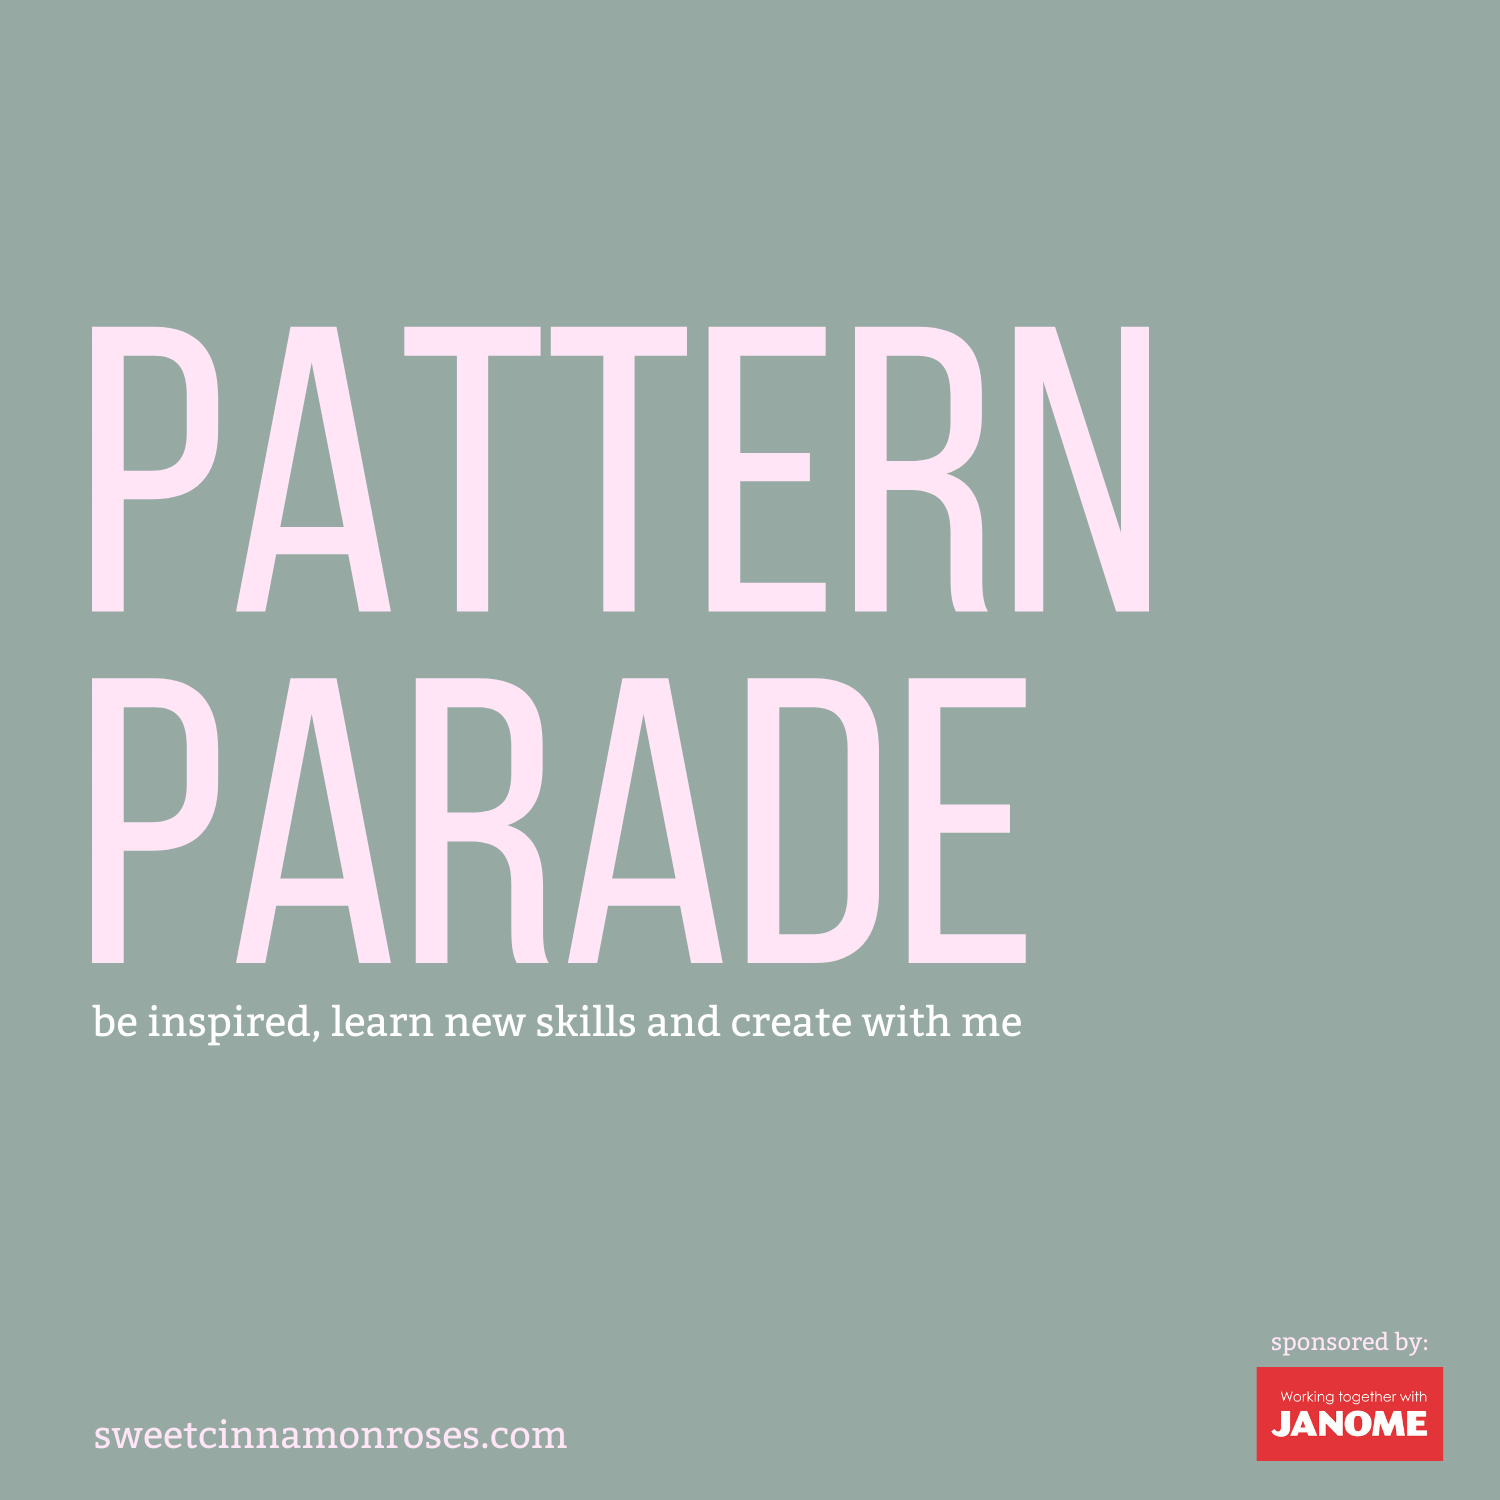 Welome to the PATTERN PARADE!